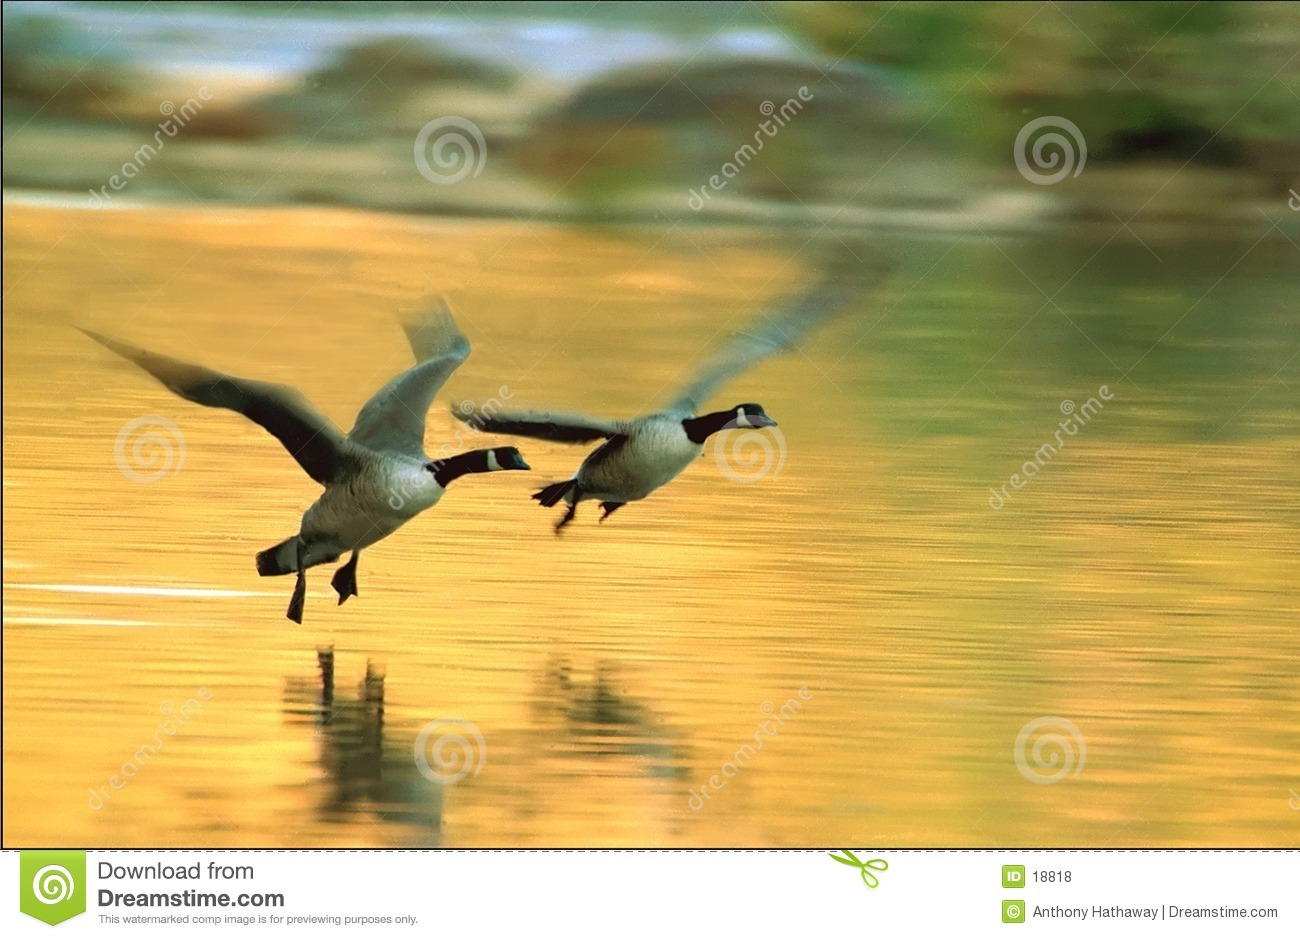 Canadas in flight